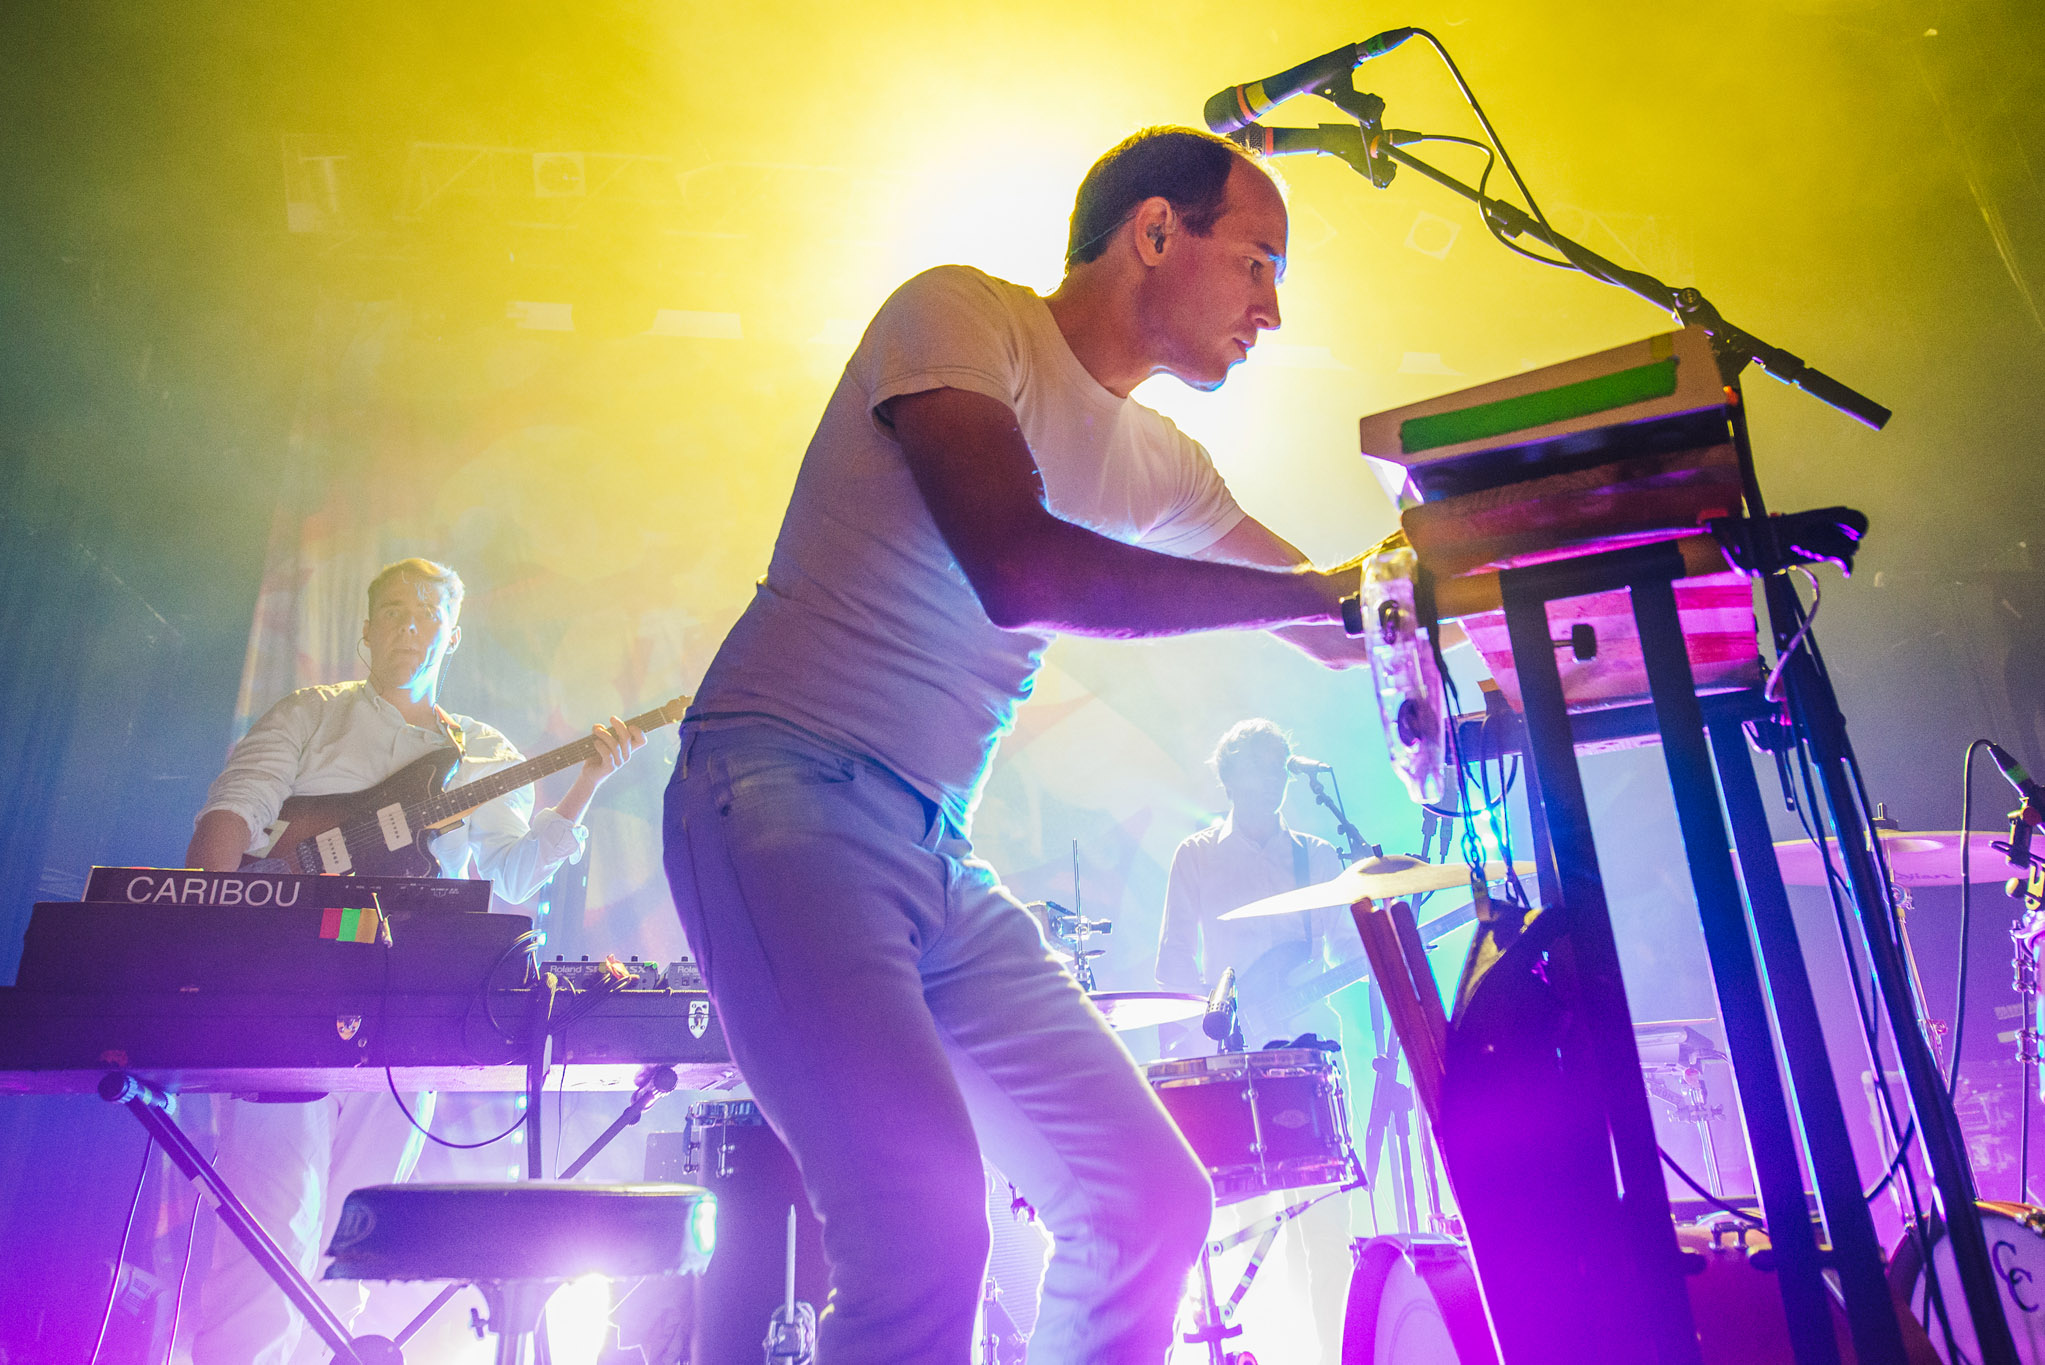 Caribou shares unreleased music in new 6 Music mix